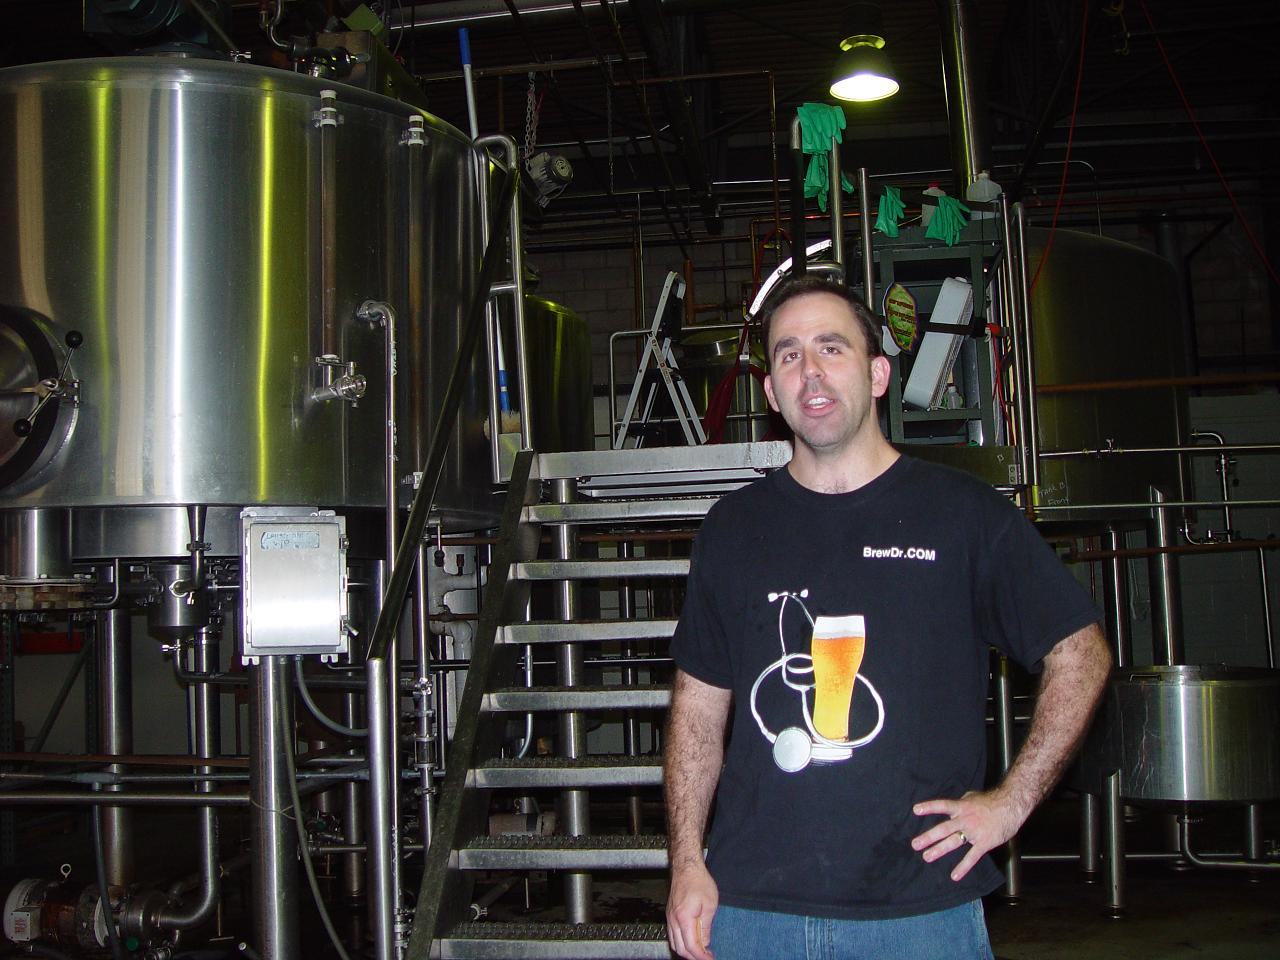 62. Weyerbacher Brewery, Easton PA 2006